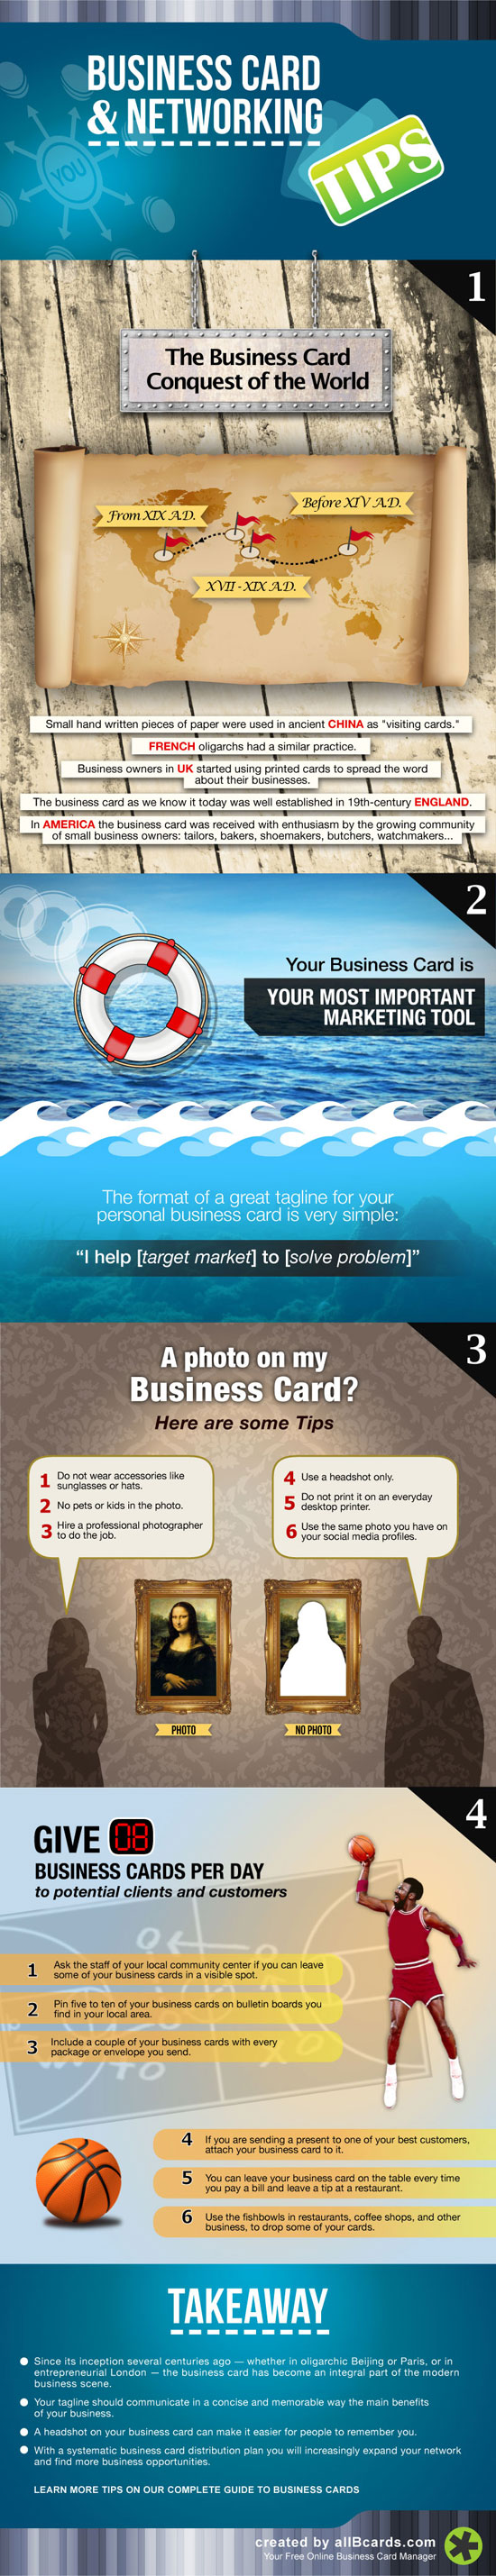 Business Card and Networking Tips